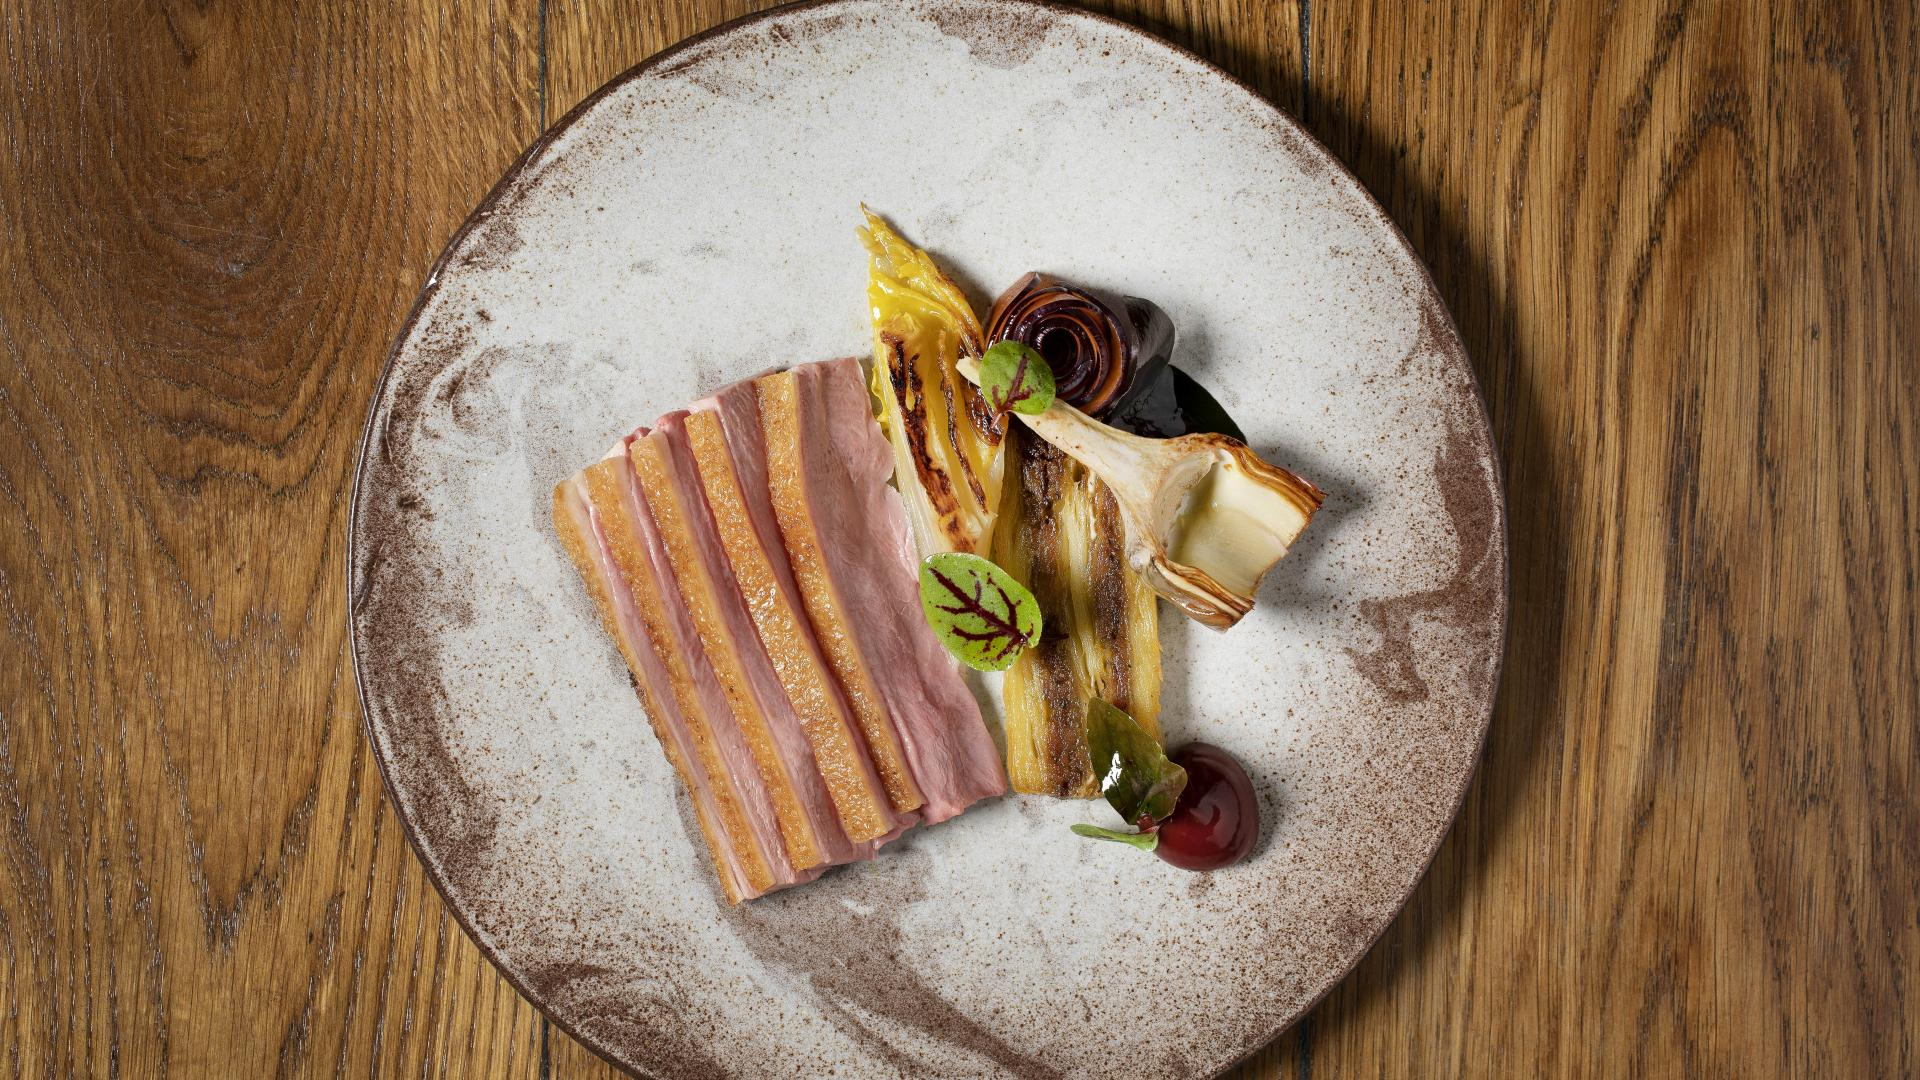 This is an image of the salt-aged duck dish at The Princess of Shoreditch